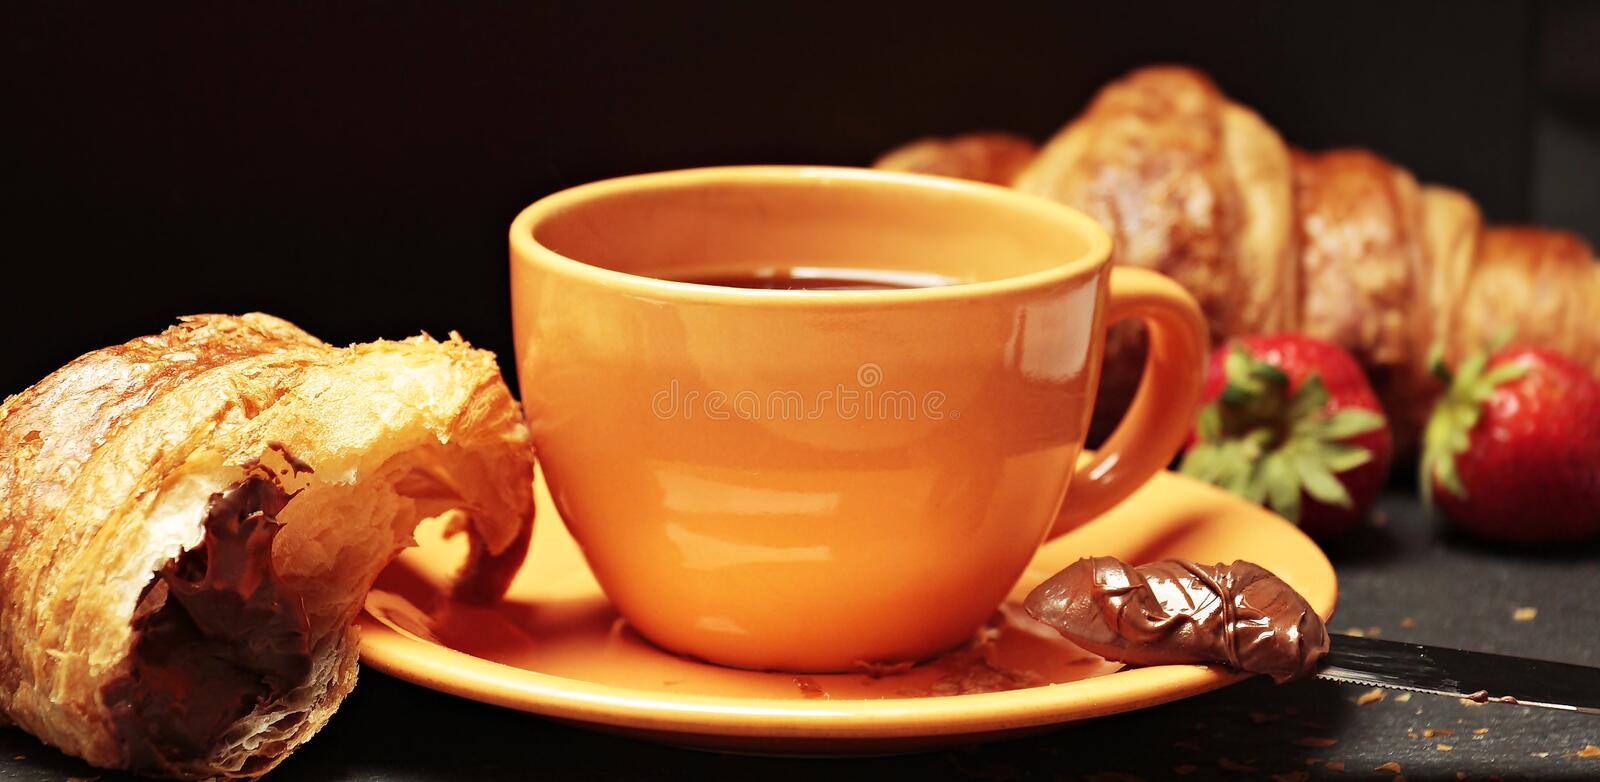 Breakfast, Close-up, Croissant stock photos